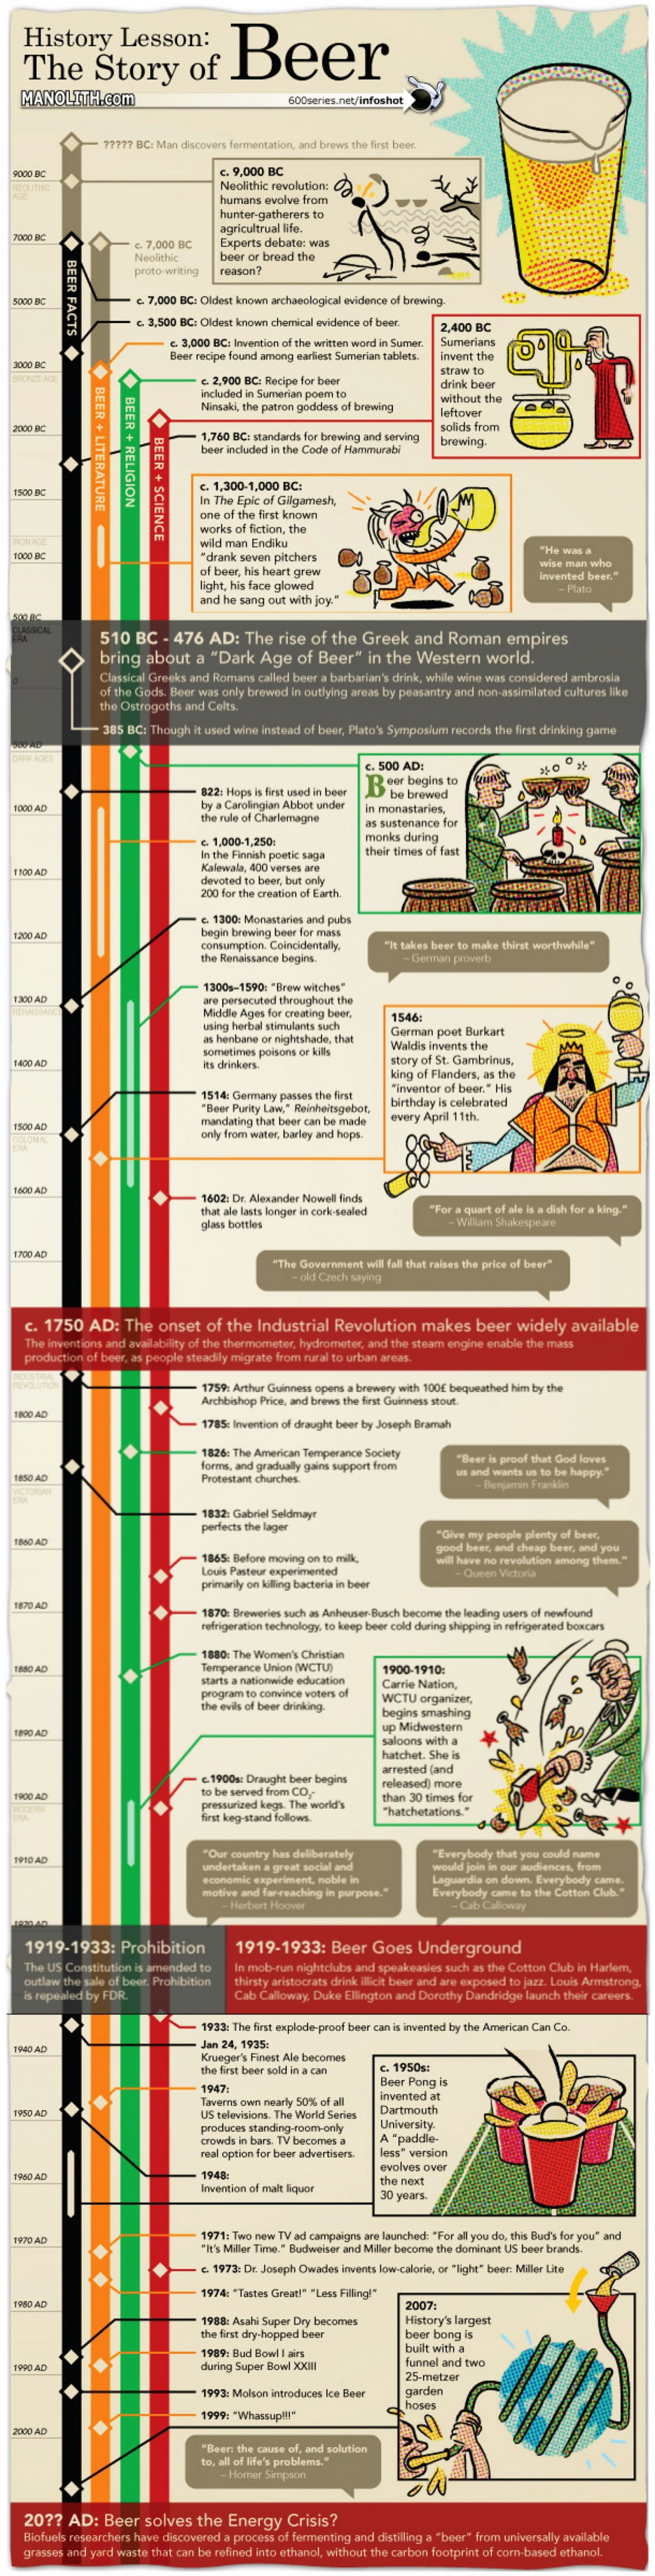 History Lesson The Story of Beer Infographic